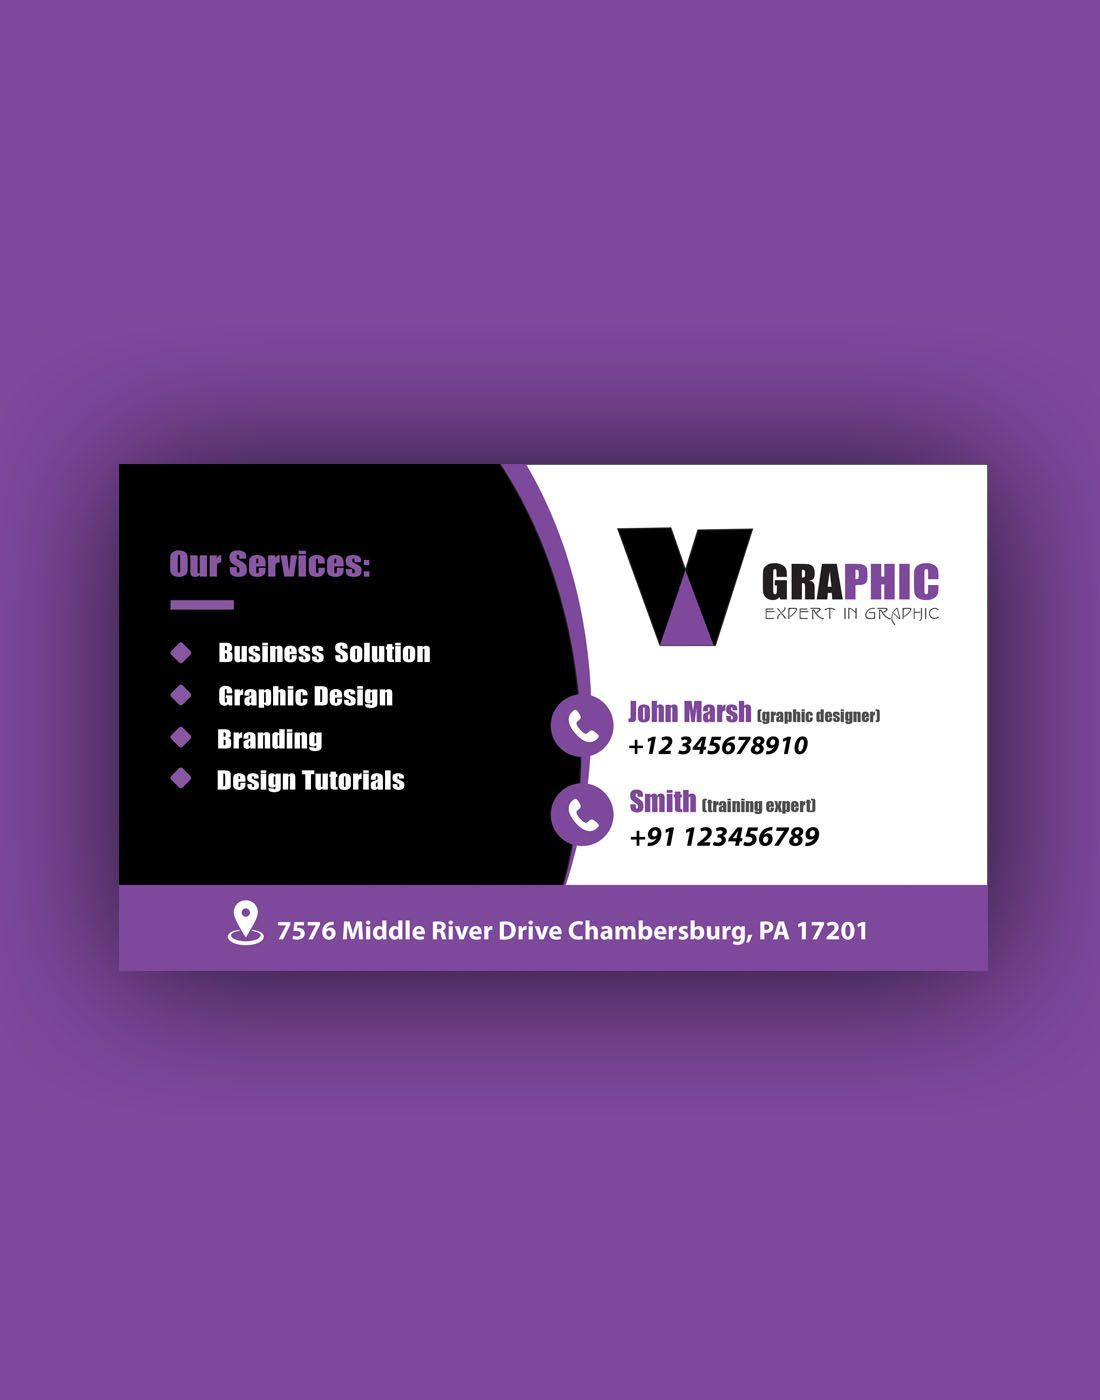 The Remarkable 036 Office Business Card Template Ideas Phenomenal Open 8371 Rega Business Cards Creative Office Depot Business Cards Business Card Template